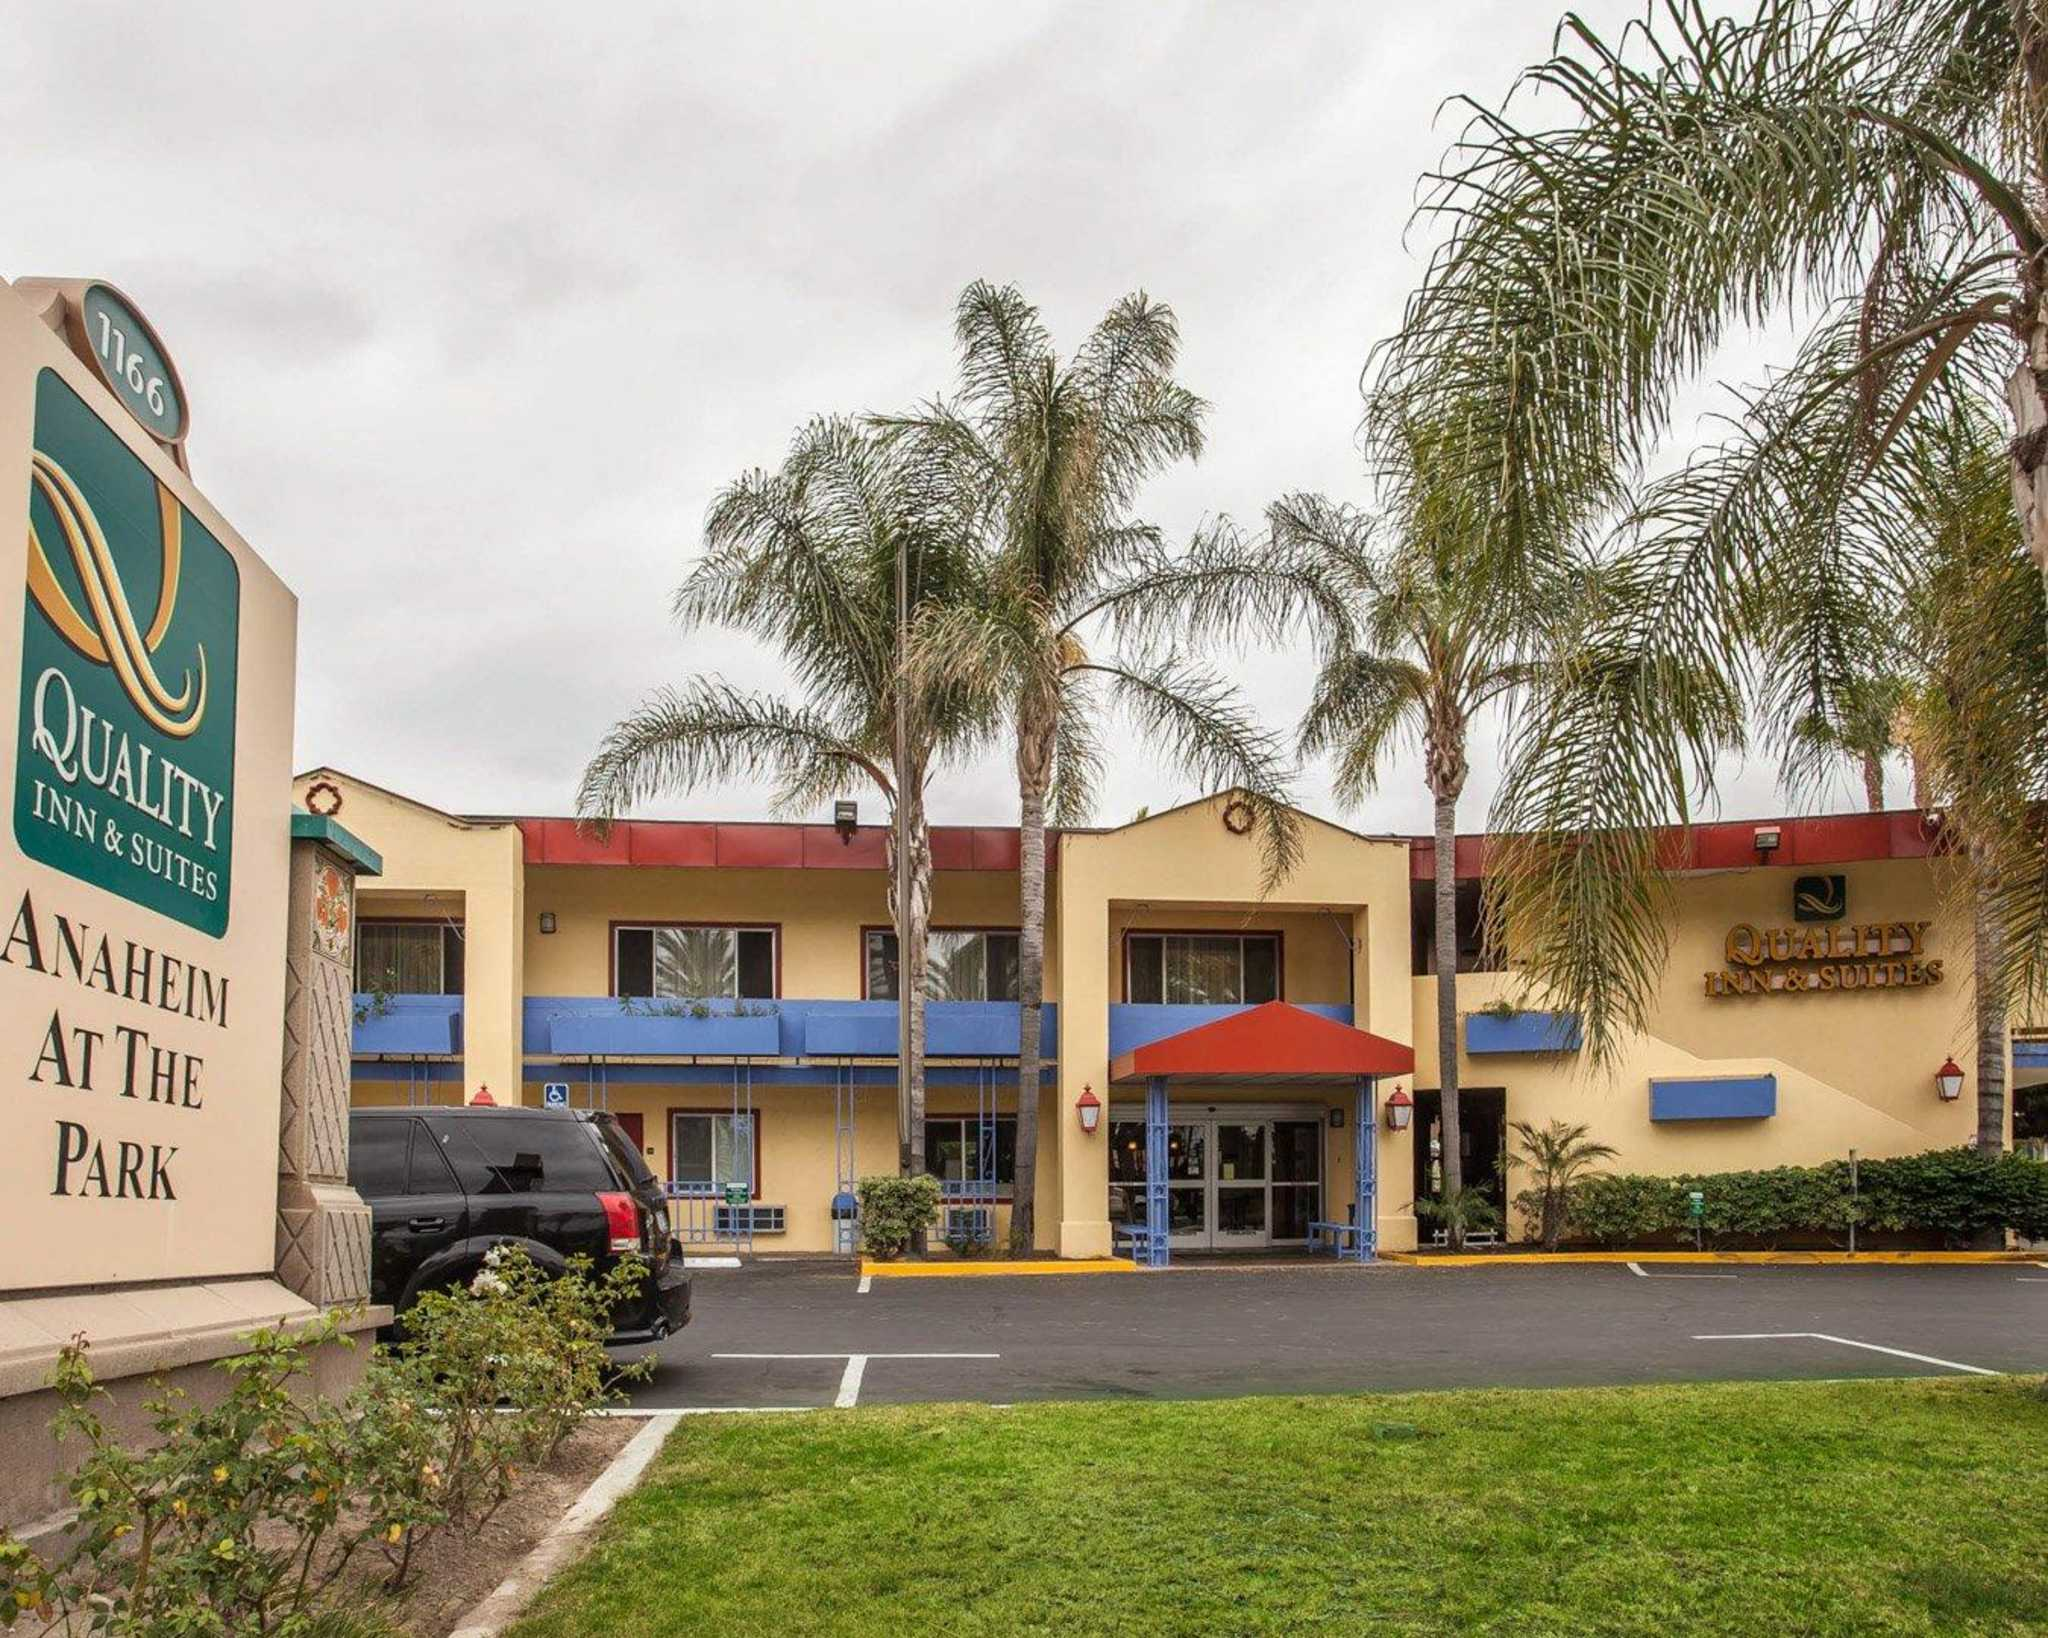 Quality Inn & Suites Anaheim at the Park image 1